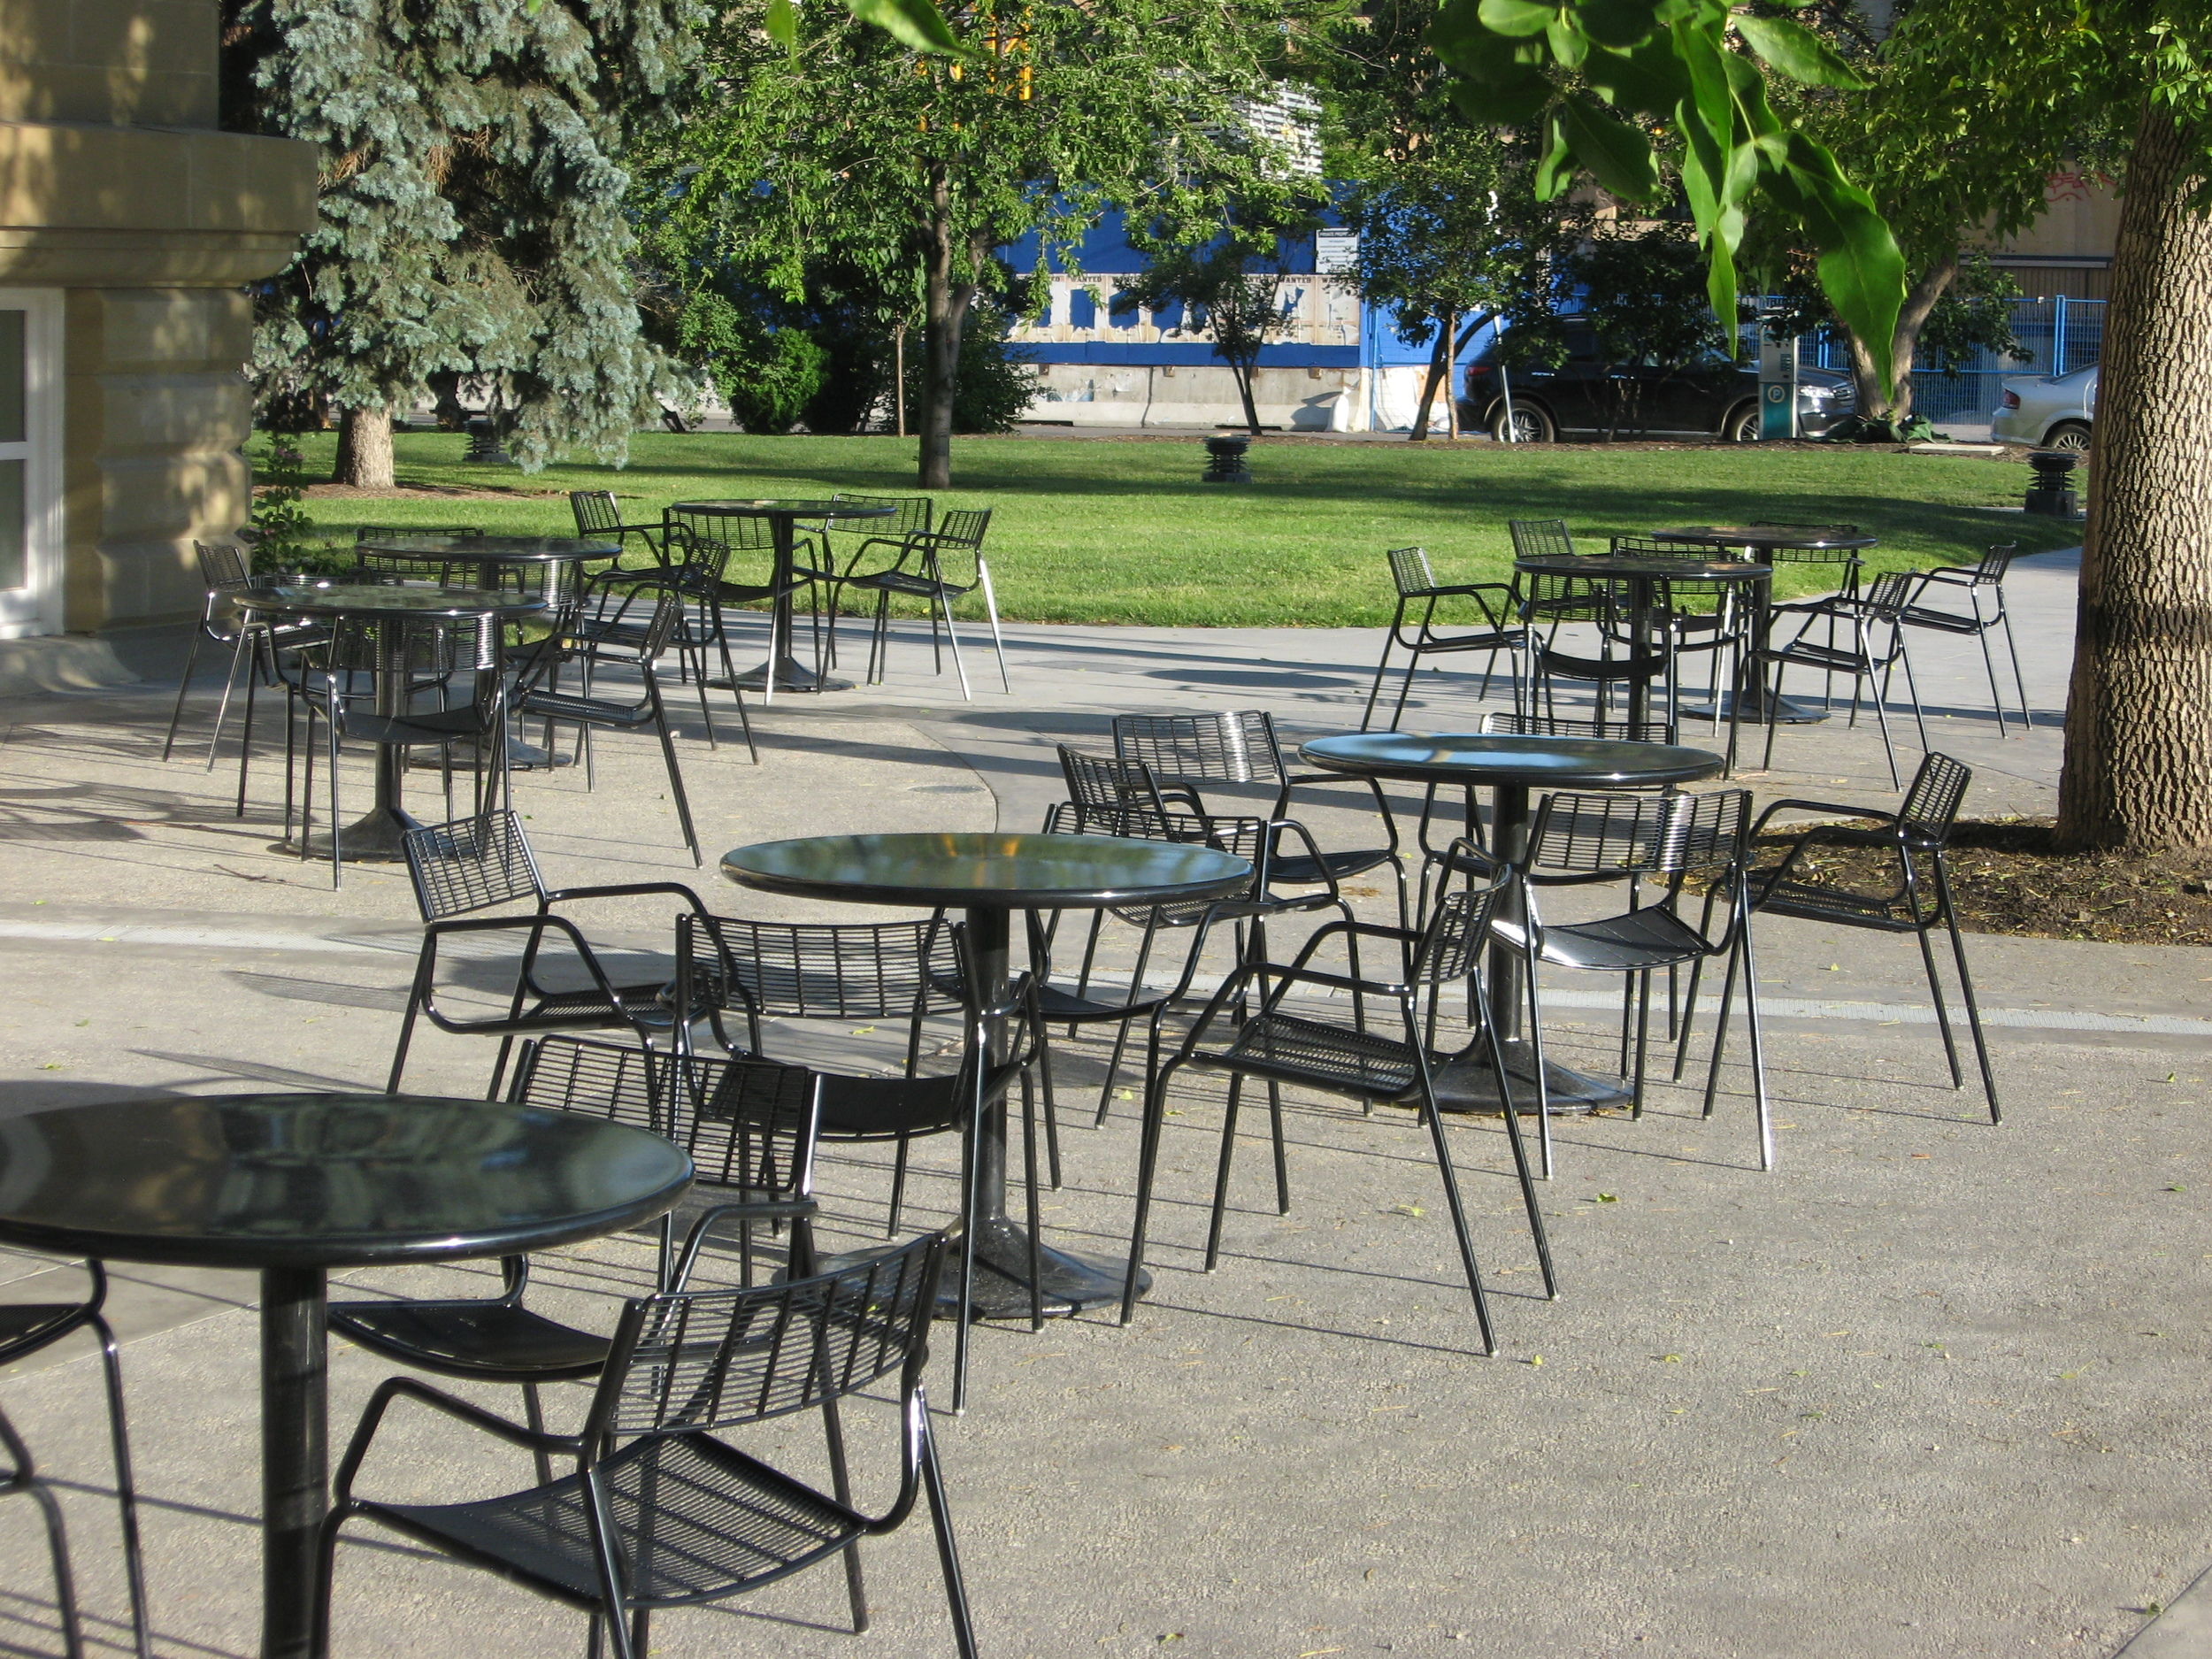 These chairs in Memorial Park are just waiting for a Saturday Market.